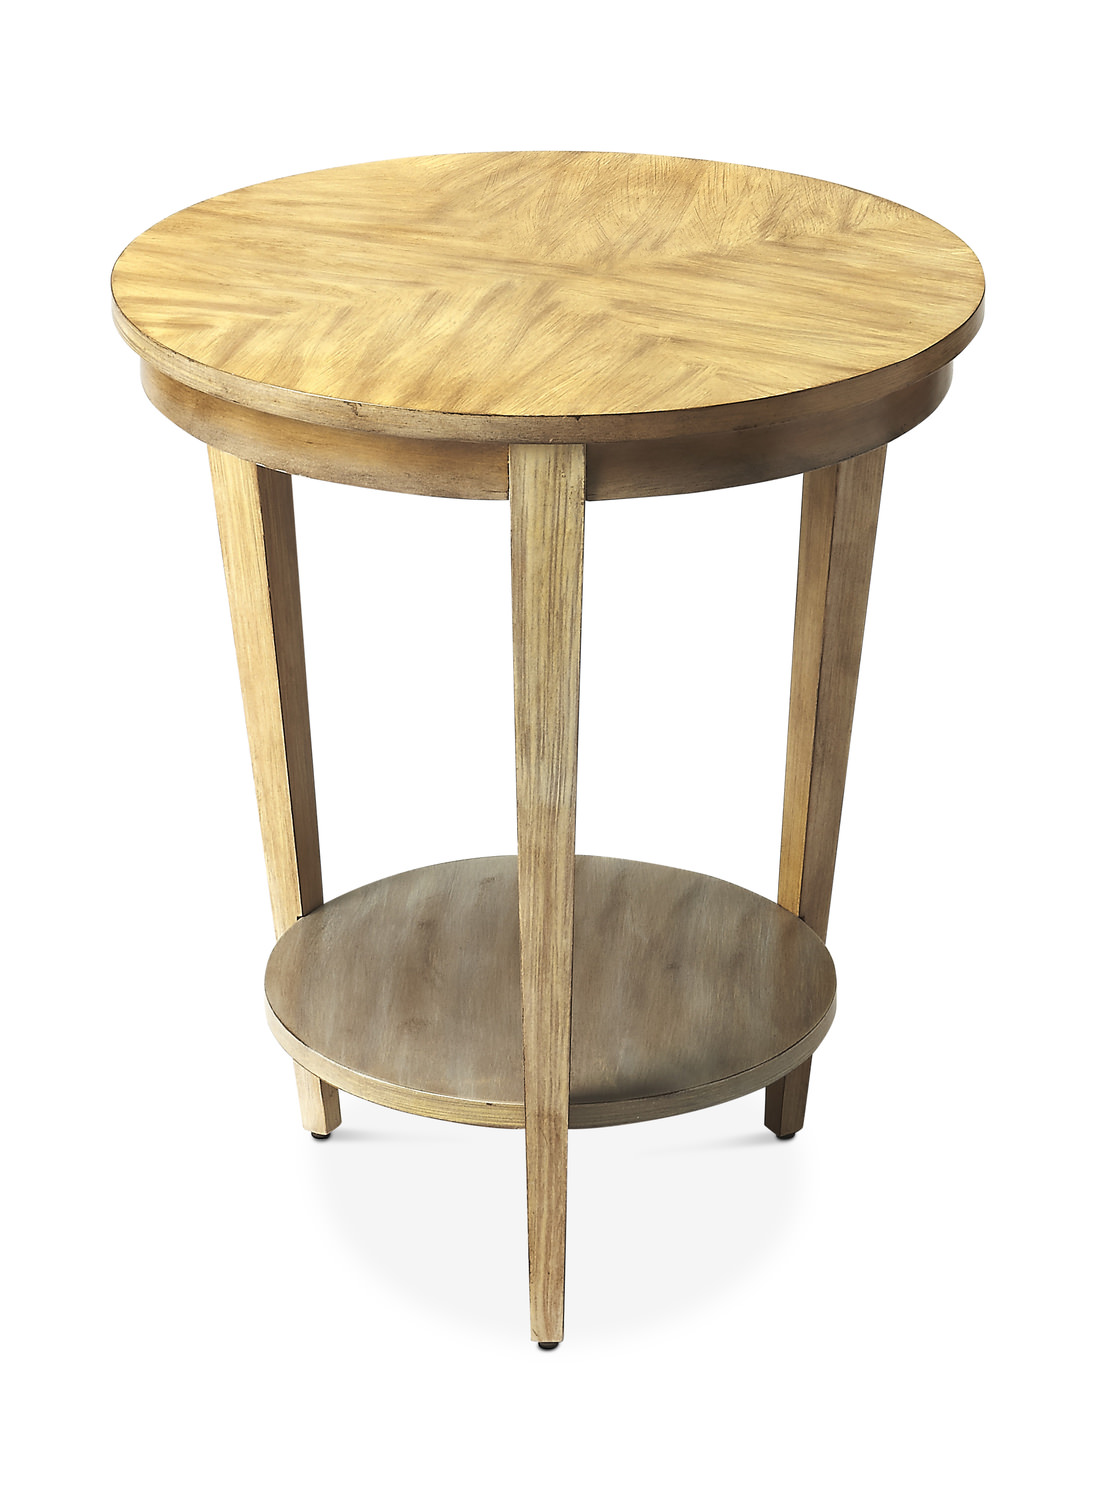 butler loft round accent table hom furniture nightstands toronto wicker couch ikea cube boxes outdoor living clearance dining with seating pottery barn yellow home decor kids